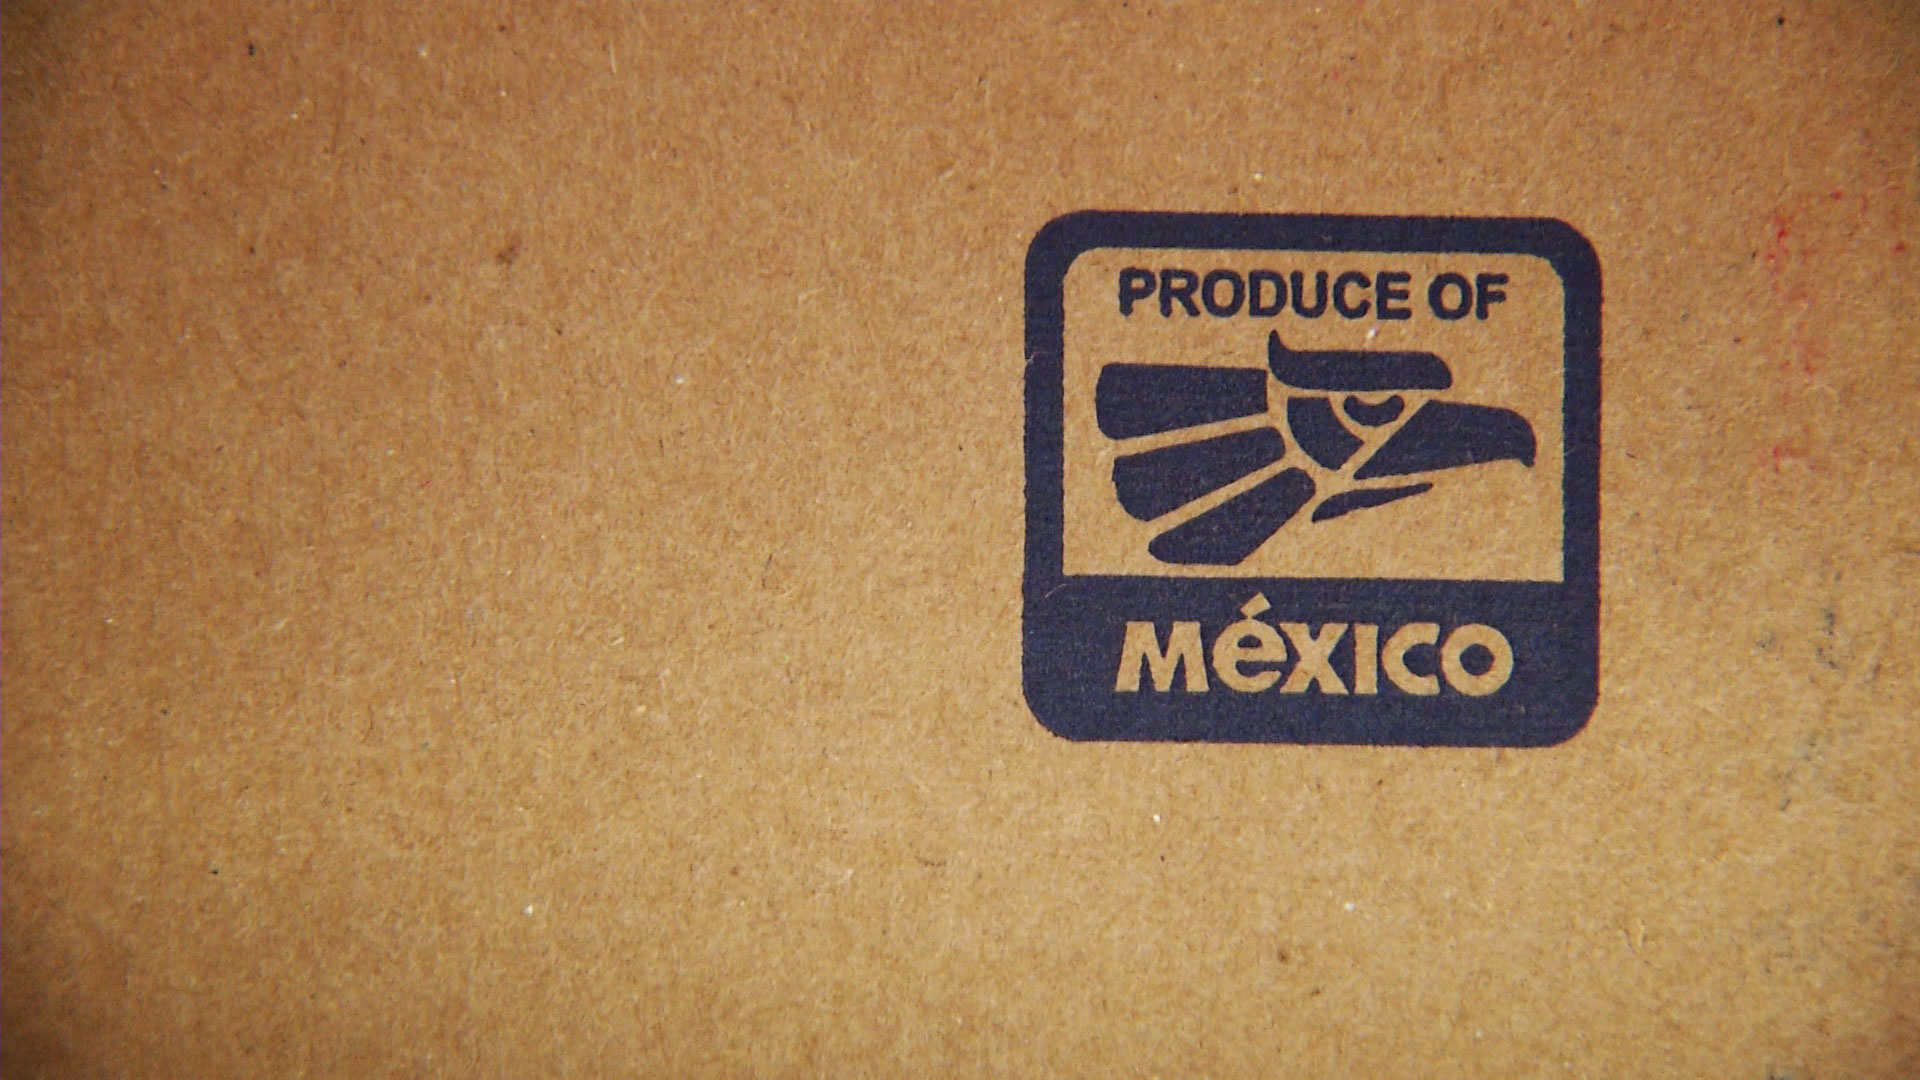 File image of a box of produce from Mexico.